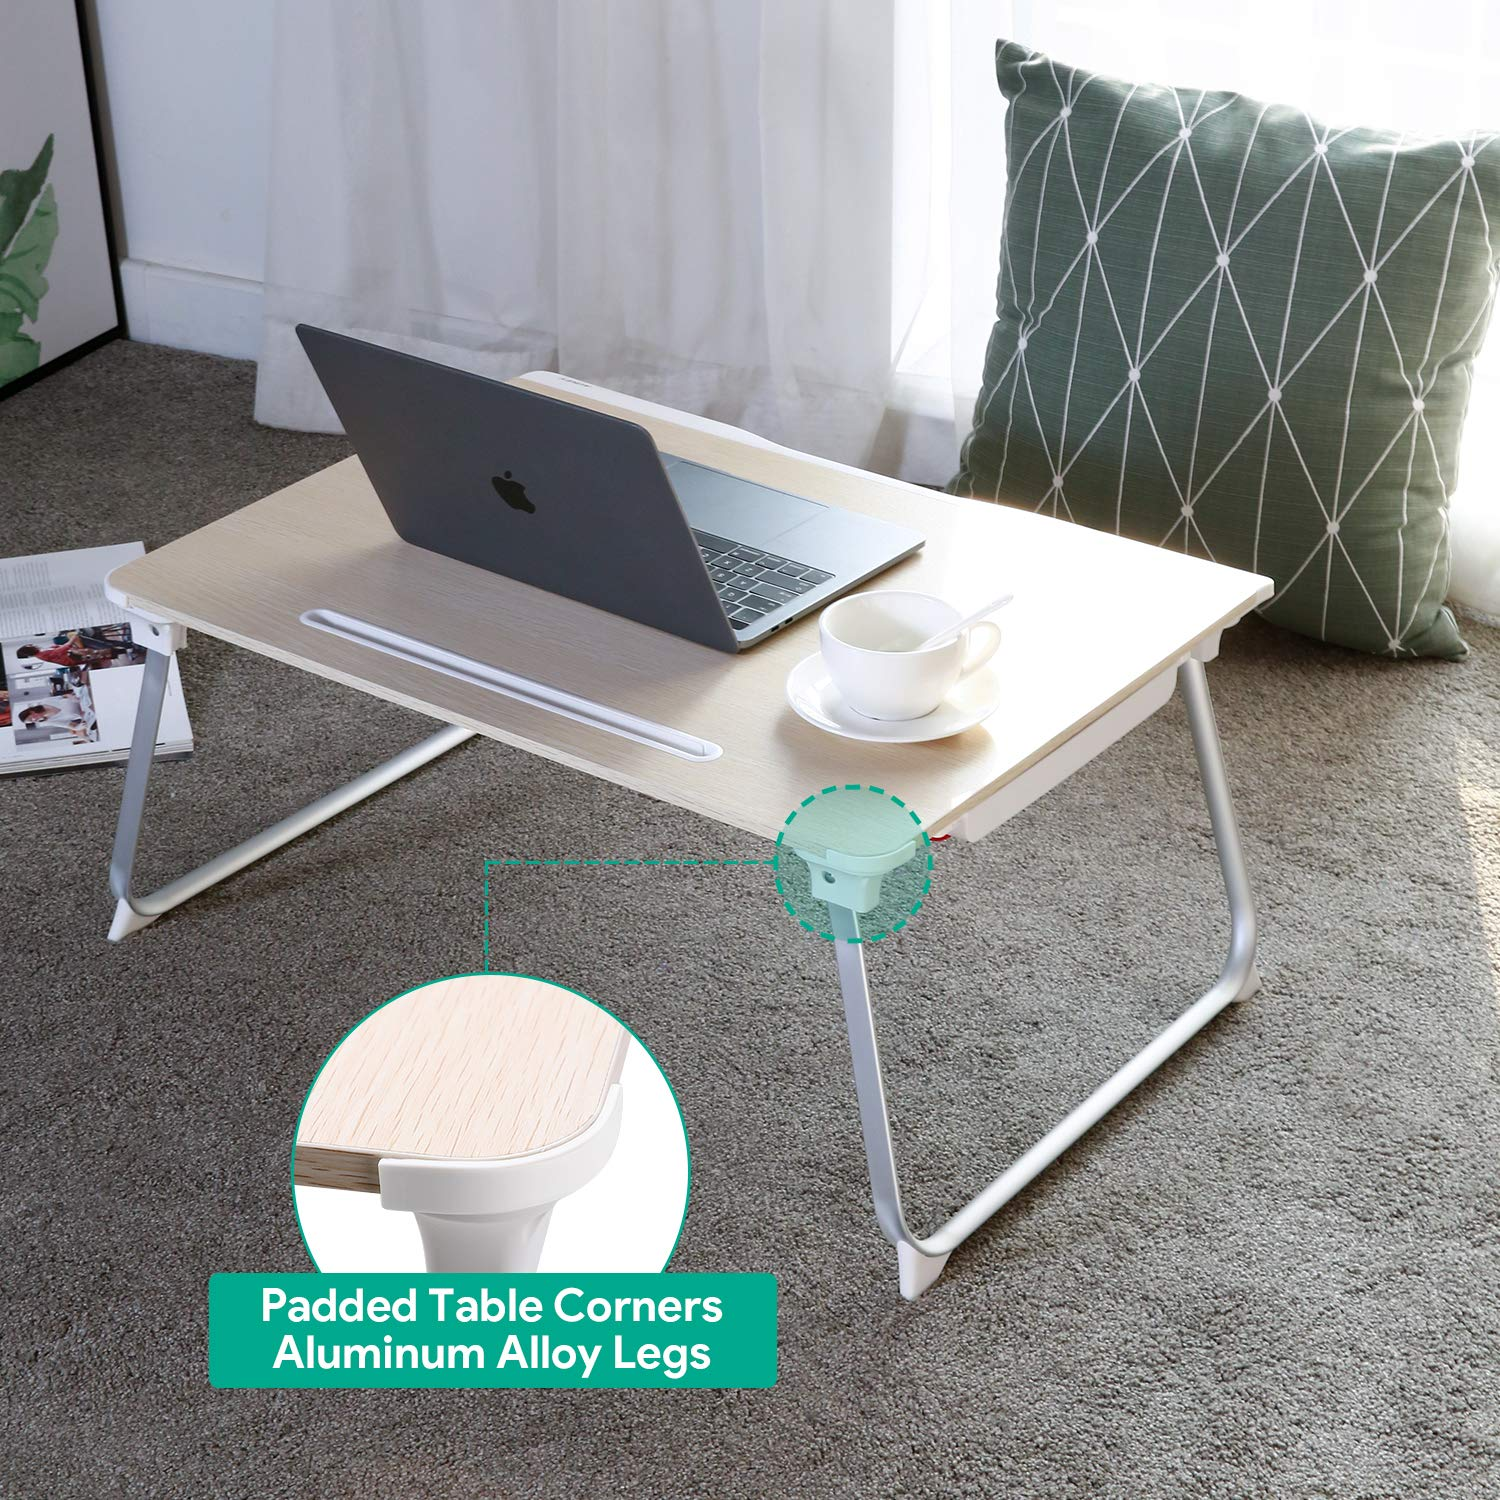 AUKEY Laptop Bed Table (Large Size) Foldable Portable Laptop Stand with Aluminum Alloy Legs, Book Stand and Drawer for Reading, Writing, and Working by AUKEY (Image #3)